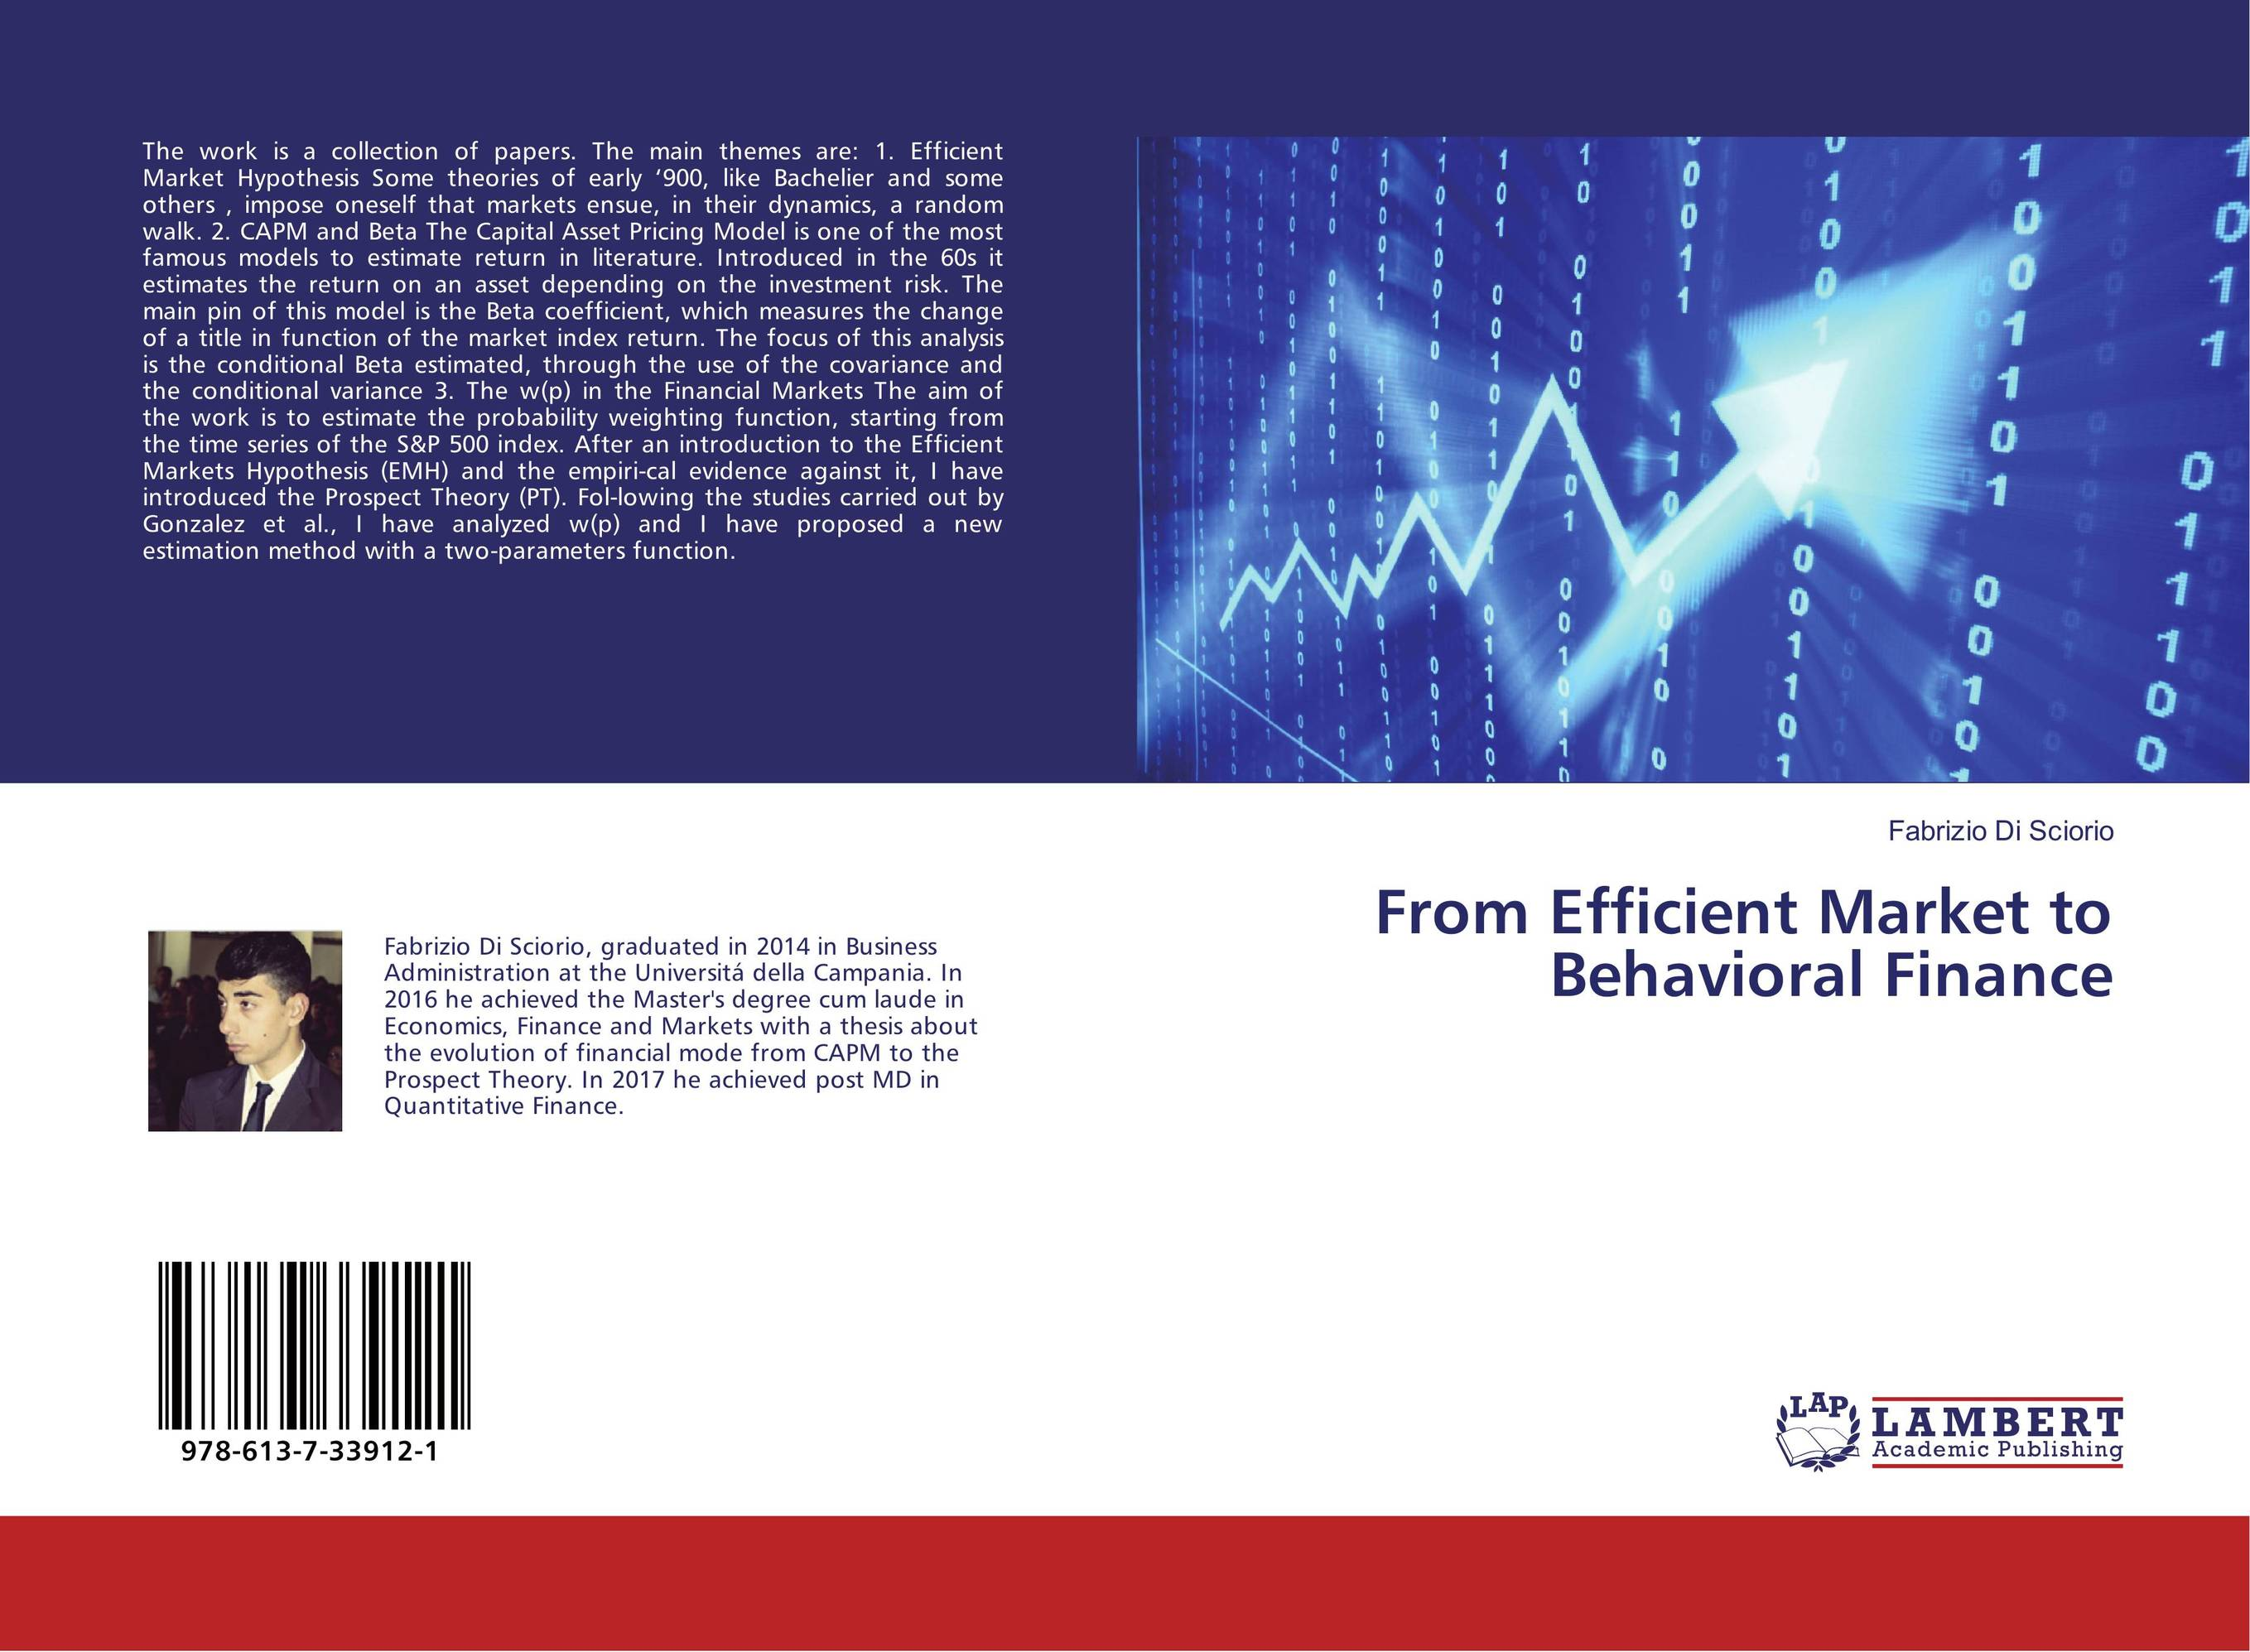 literature review behavioral finance theory Academic journal article business economics behavioral finance-theory and practical application by fromlet, hubert anomalies in financial markets are of interest and importance to economists in finance and other sectors they affect fundamental decisions and make decisions that appear to be.